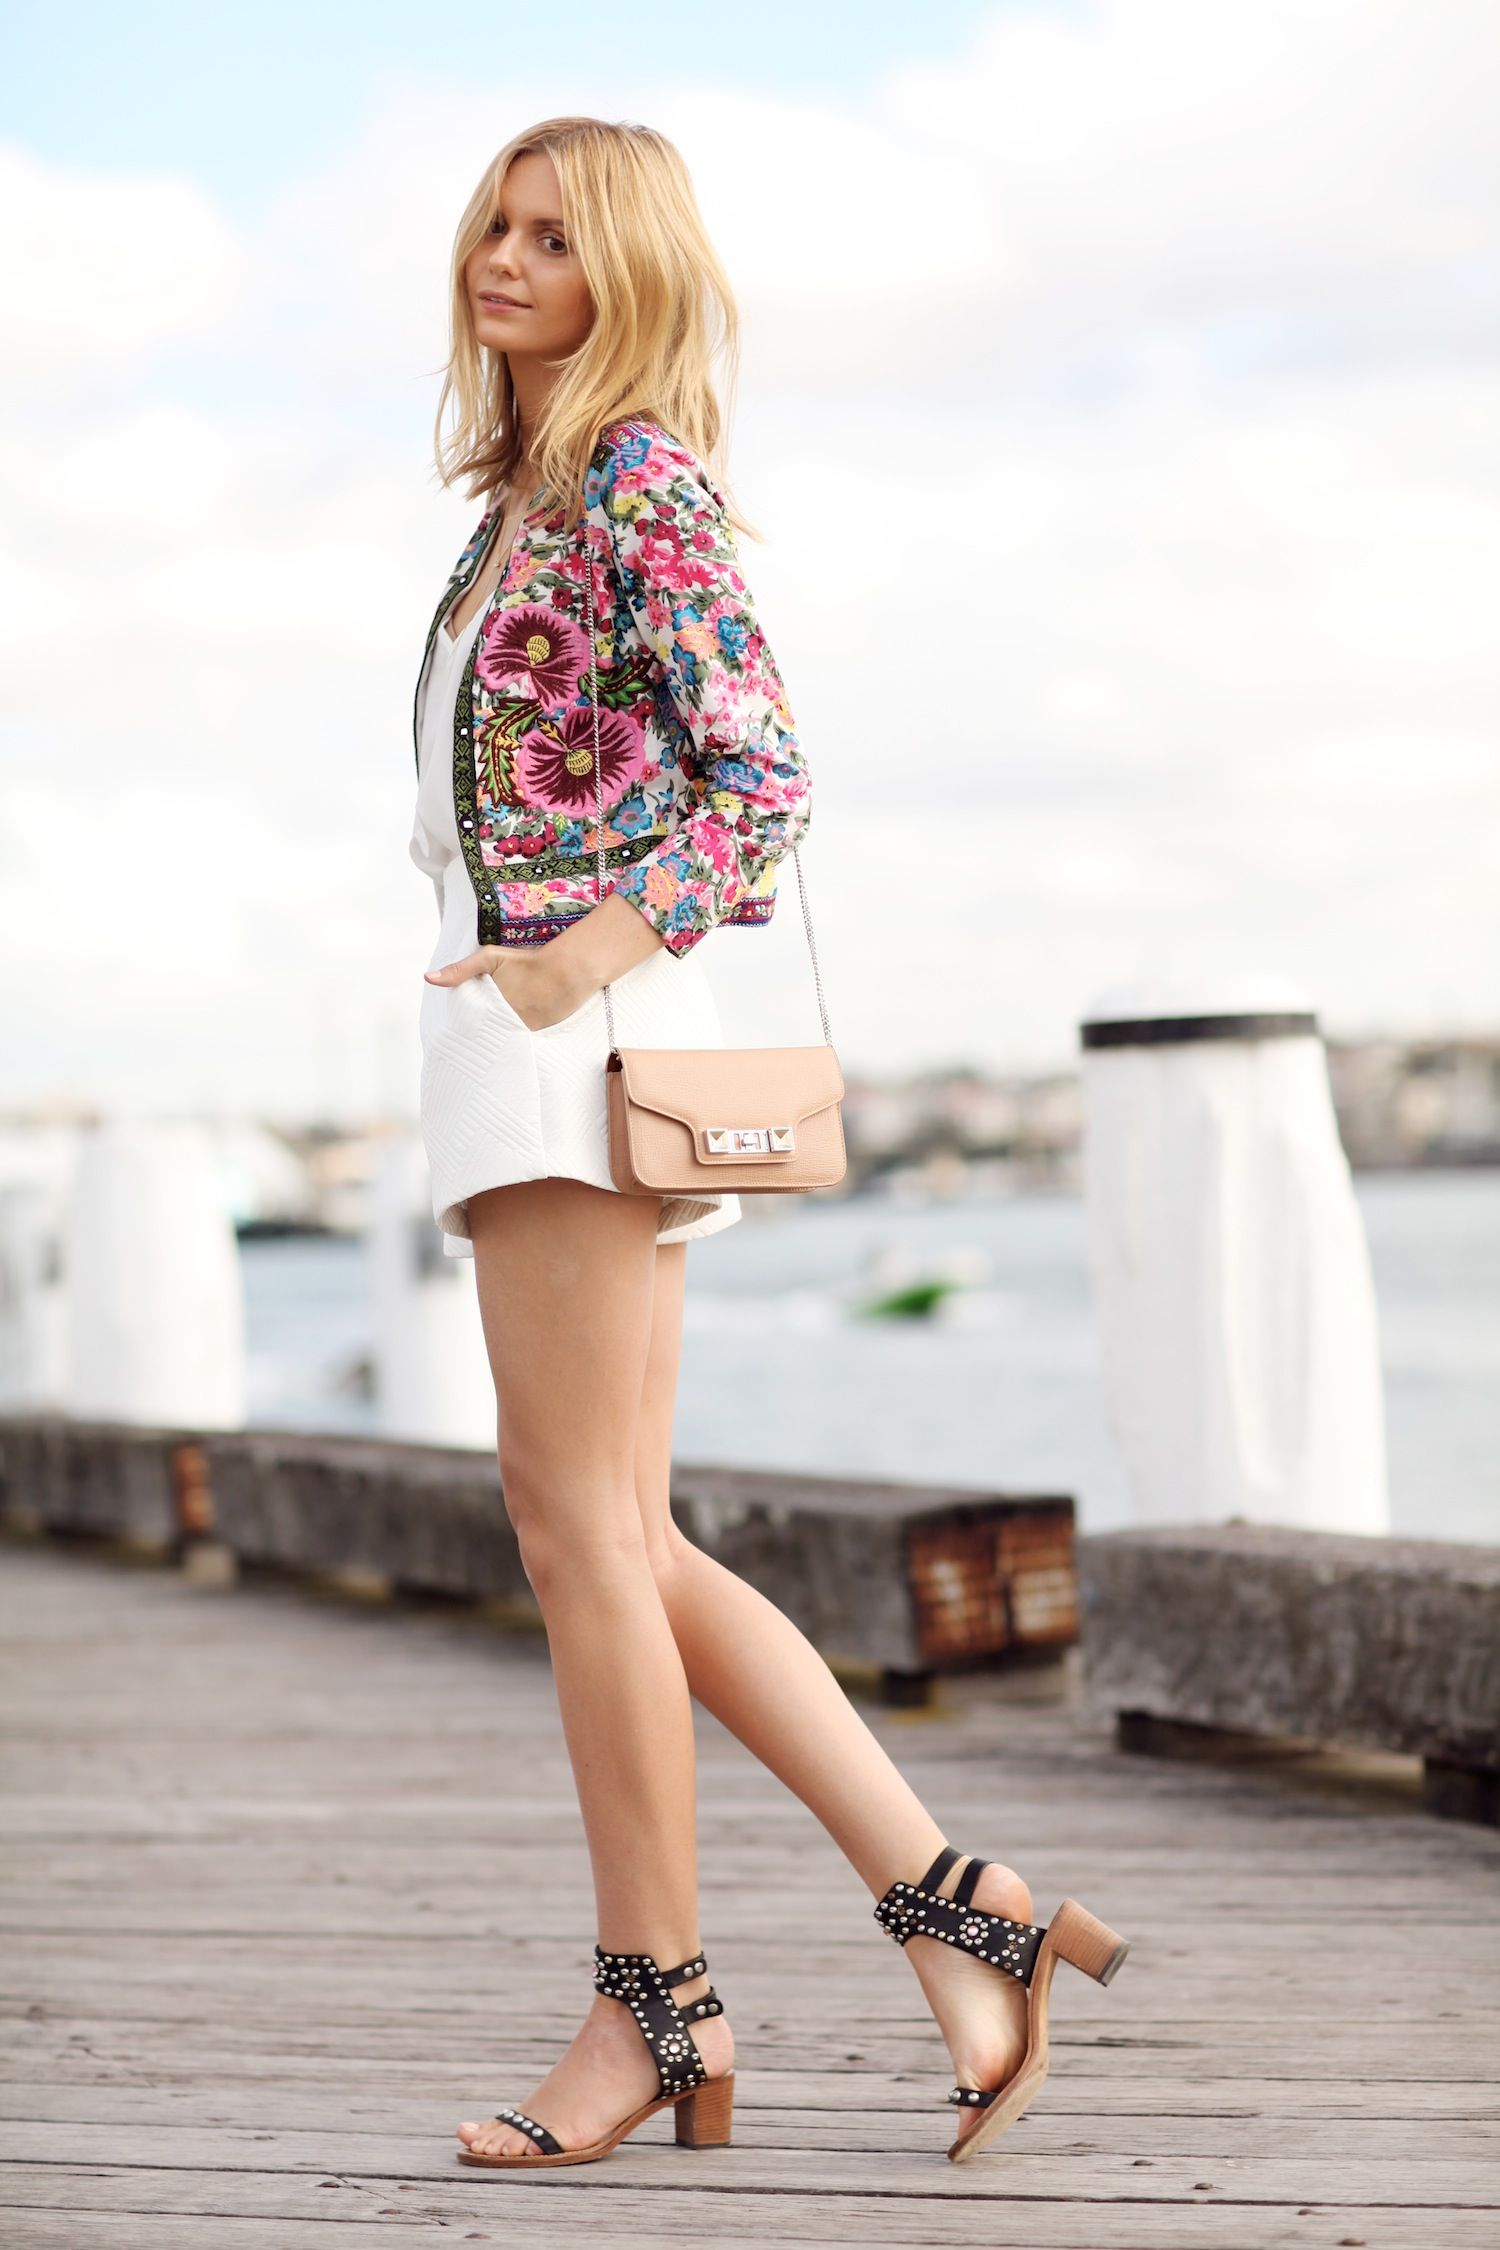 ASOS floral embroidery jacket, ASOS cami, ASOS high waisted shorts, Isabel Marant sandals